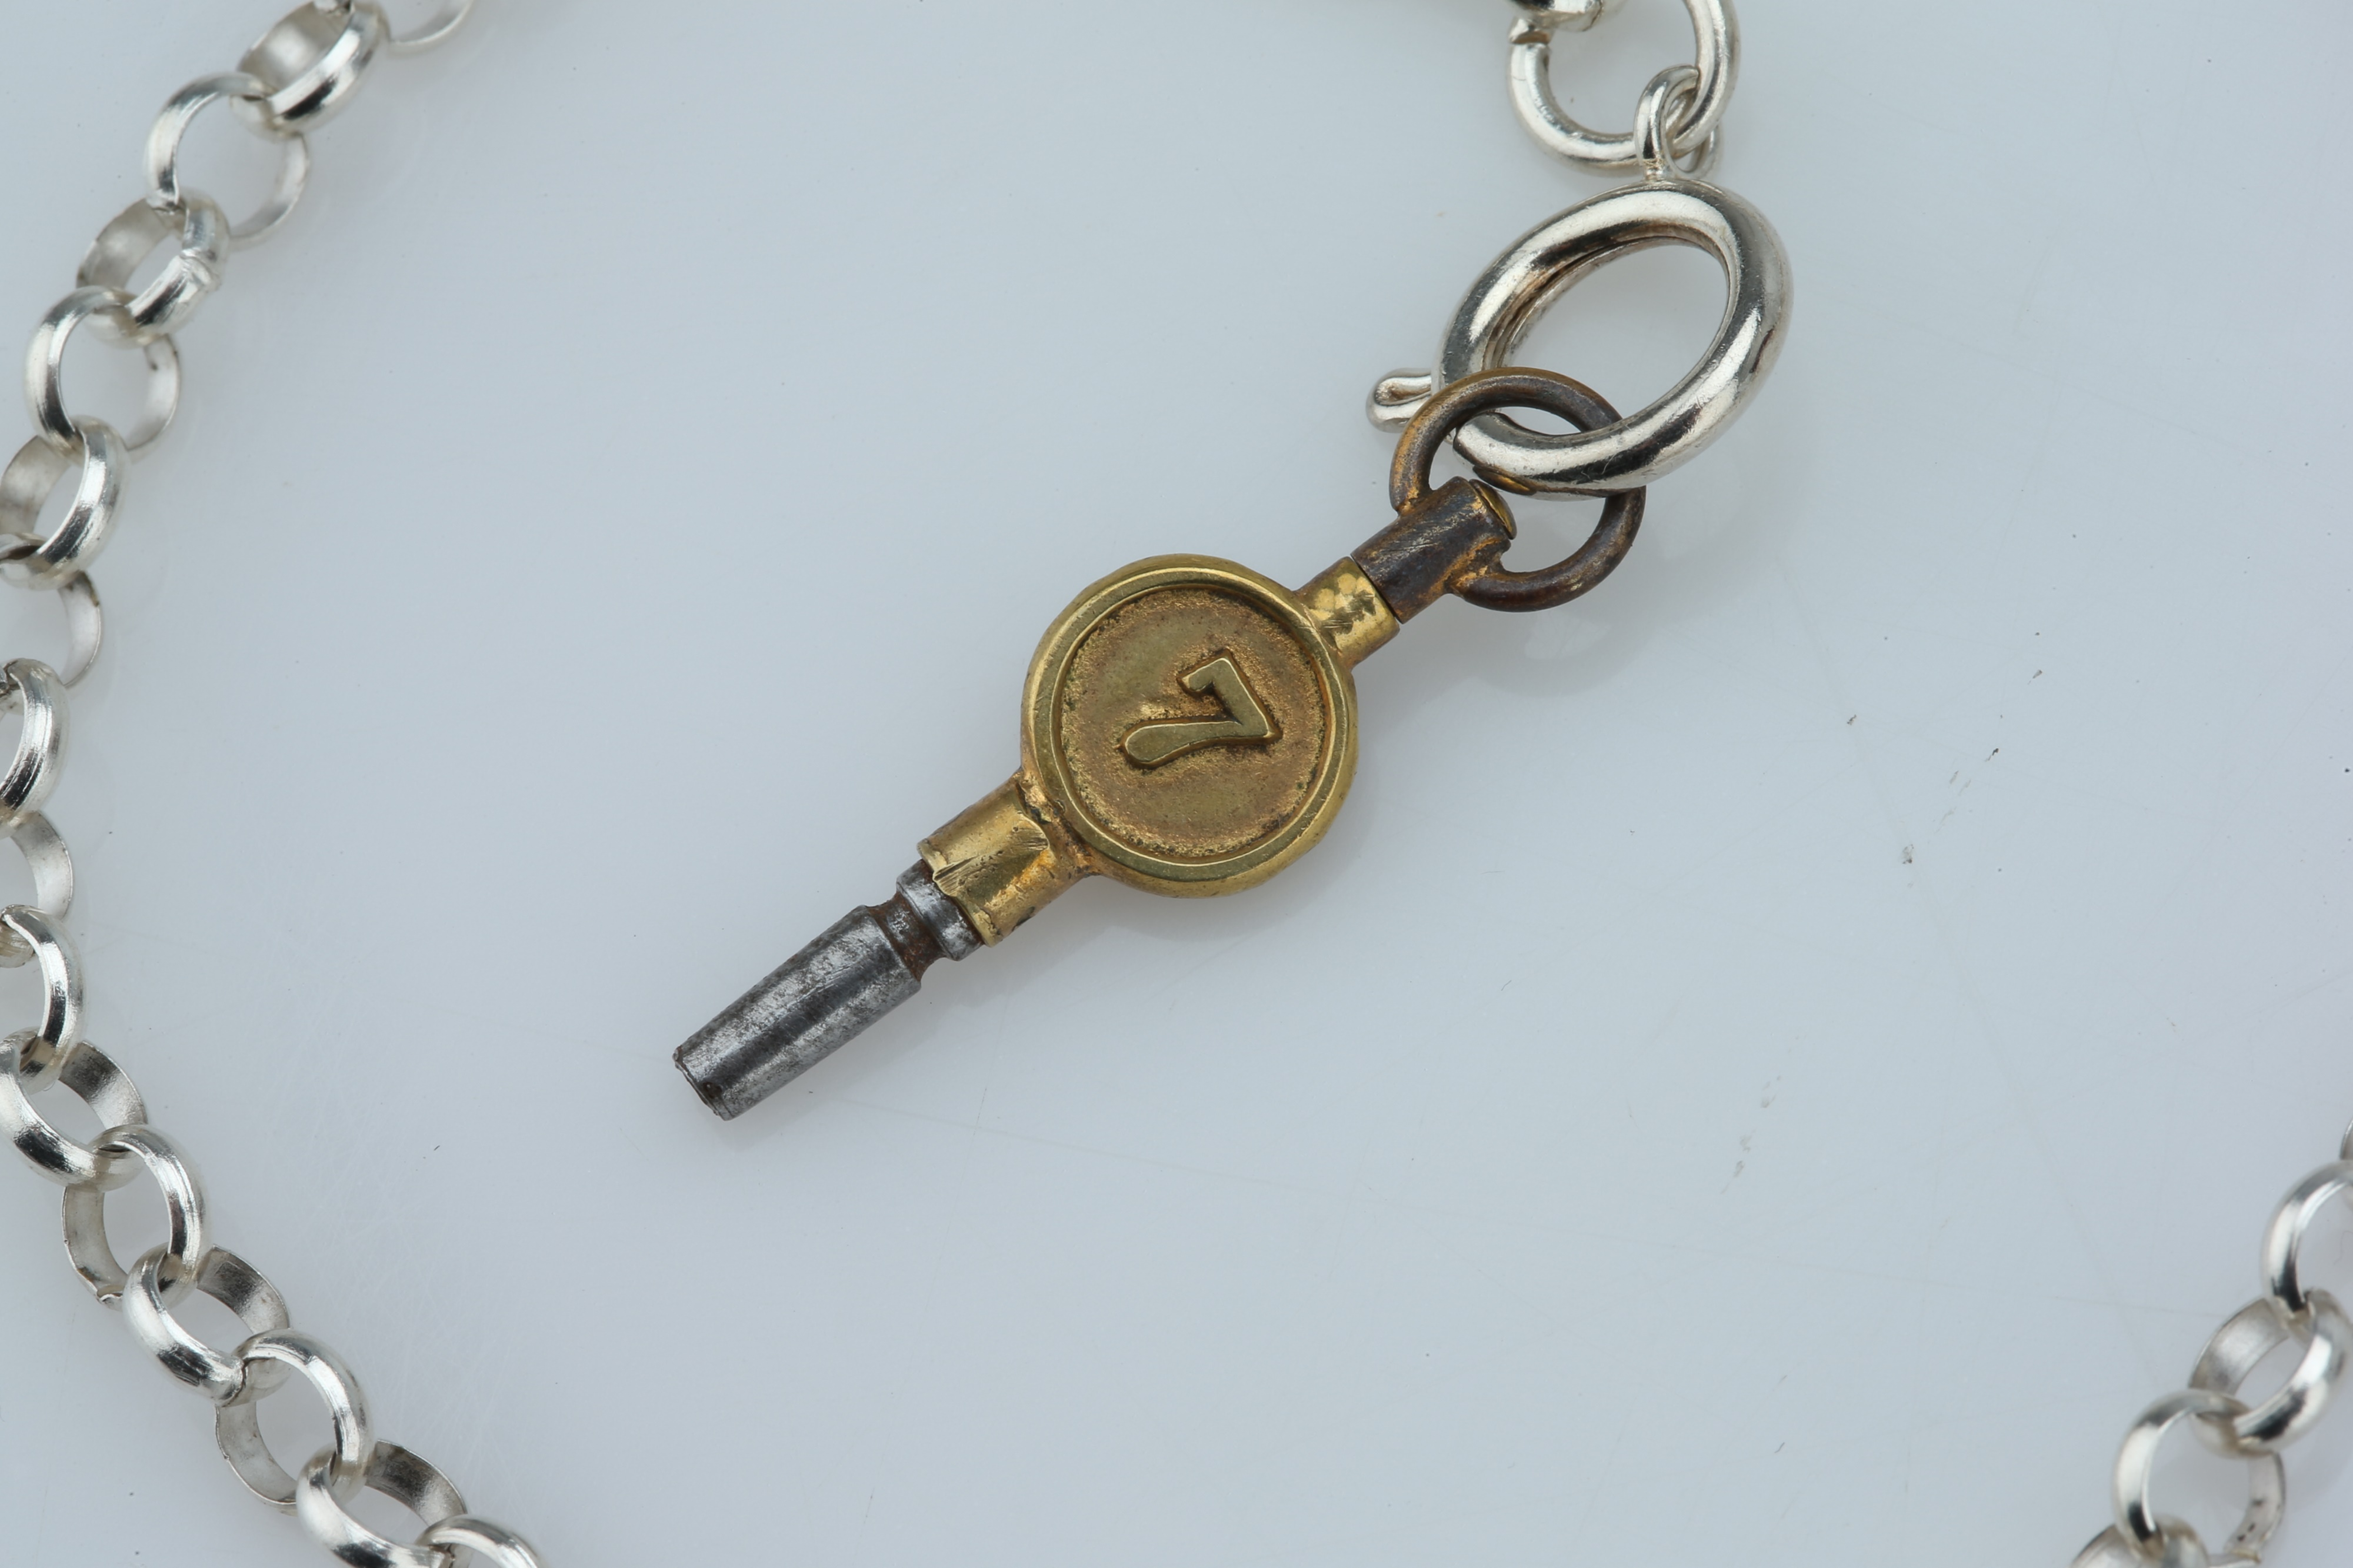 A Pocket Watch Chain - Image 3 of 3